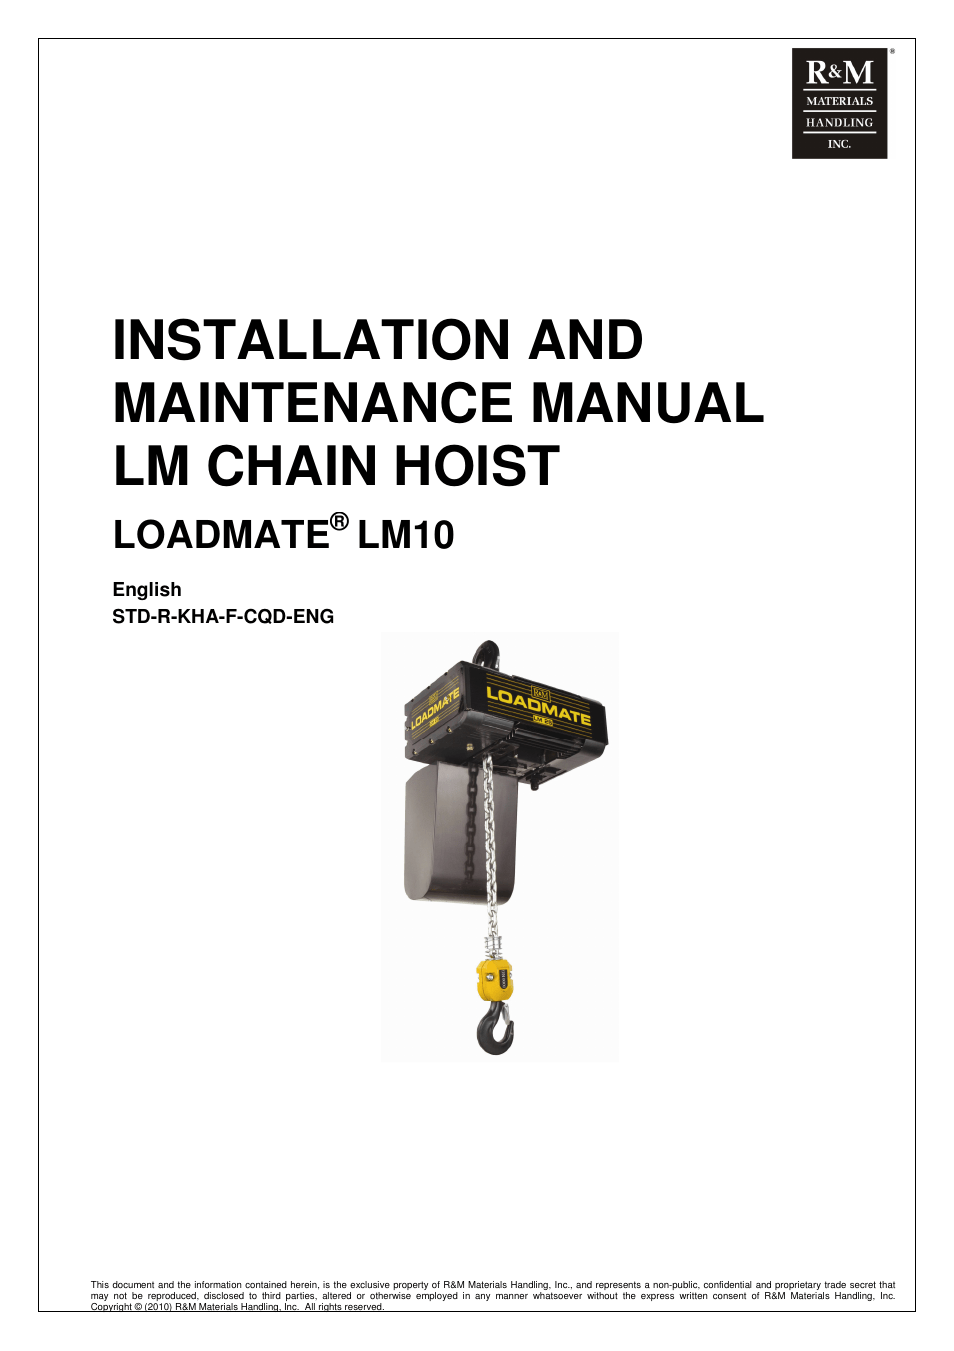 R&M Materials Handling ELECTRIC CHAIN HOISTS LoadMate